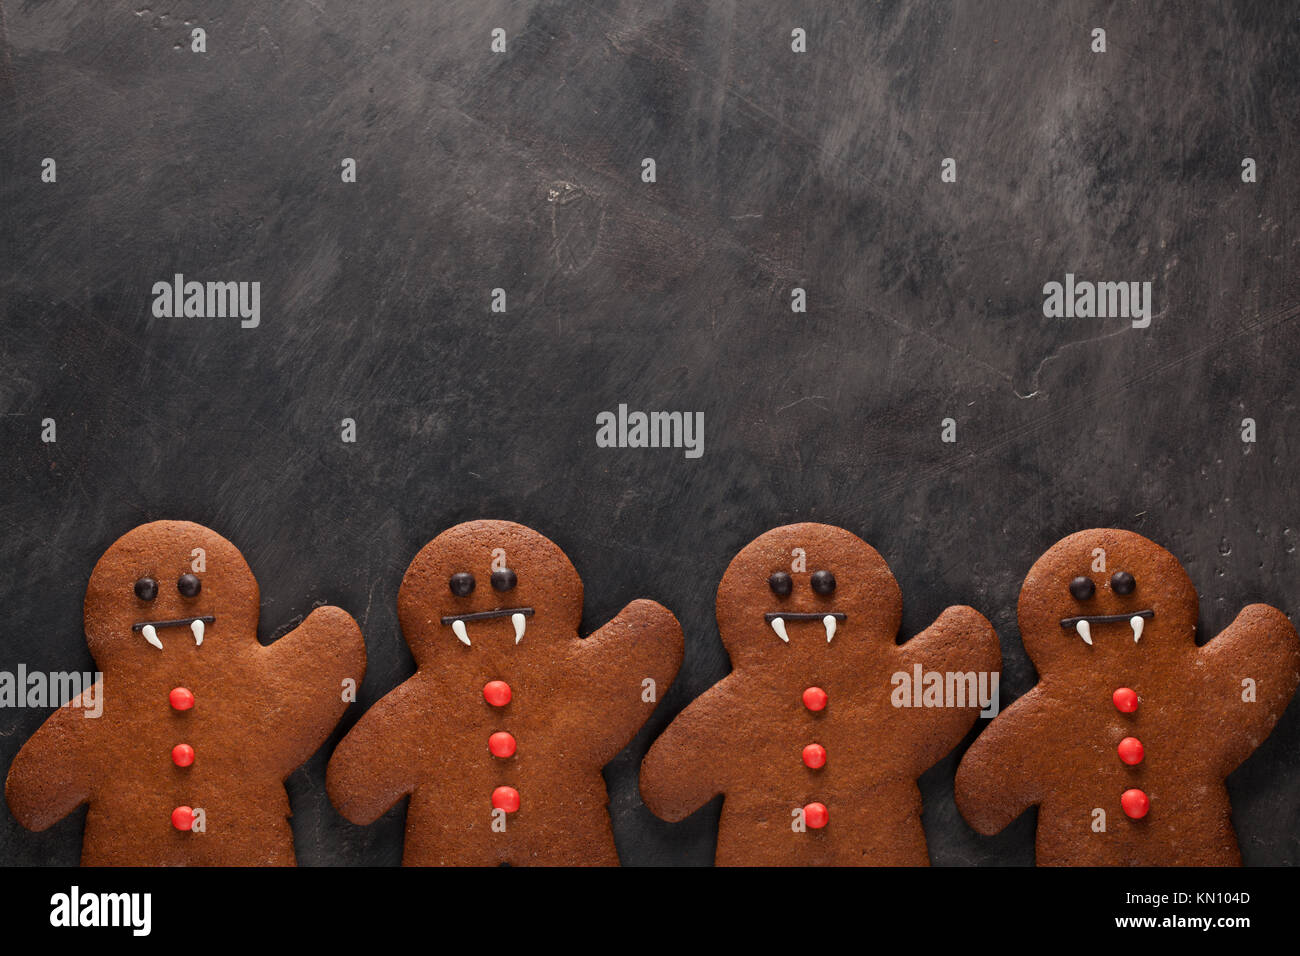 Homemade gingerbread cookies for Halloween in the form of gingerbread men vampire on dark concrete background with - Stock Image